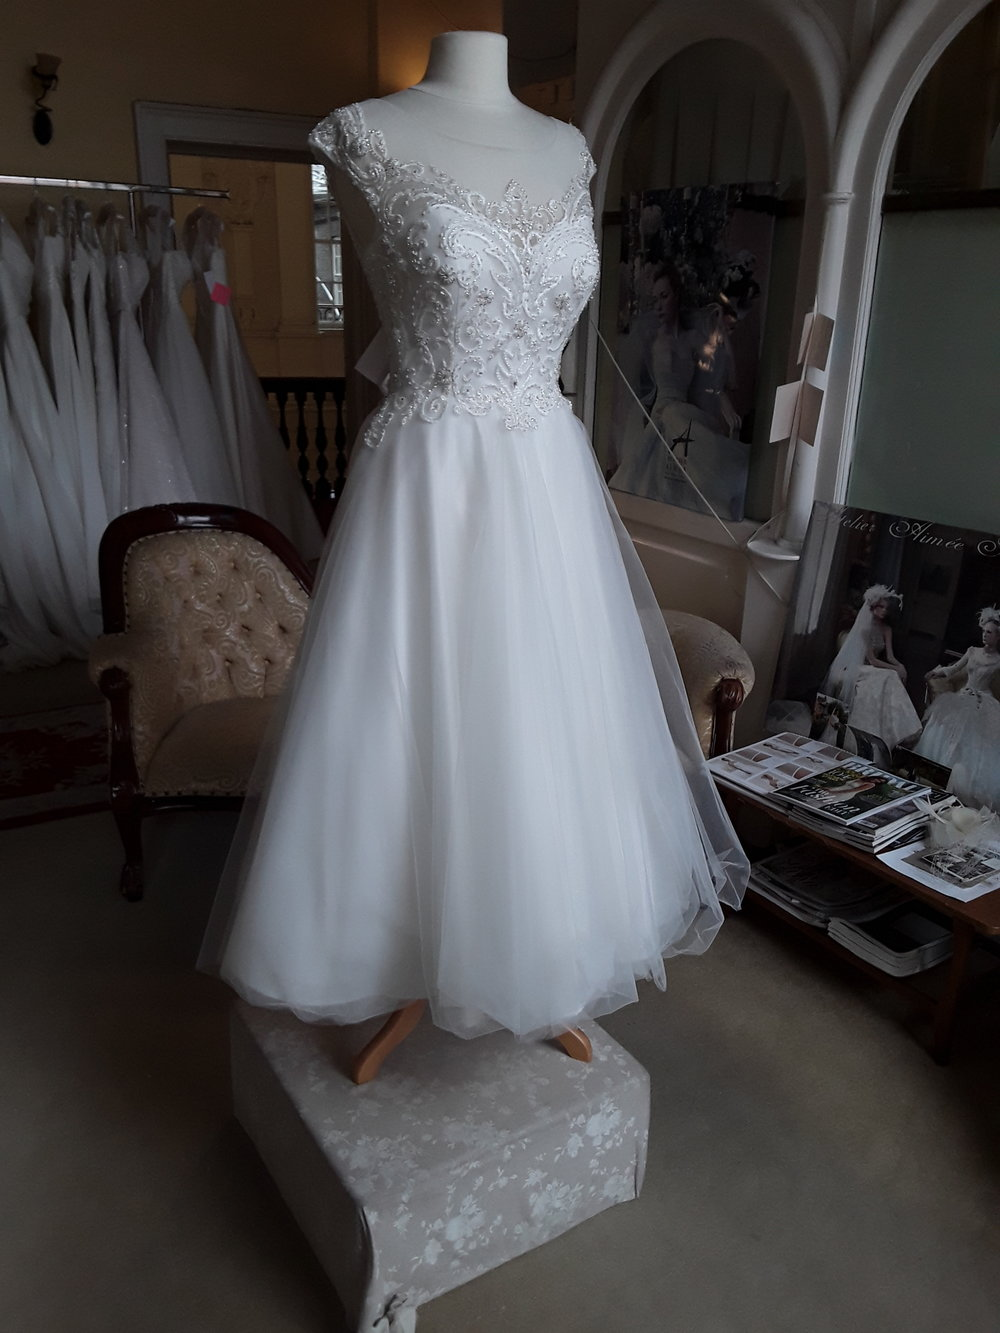 WHITE ROSE T LENGTH, TULLE DRESS WITH EMBELISHED BODICE  COLOUR: IVORY  SIZE: 12  WAS €1,295 NOW €799  REF: E122/ALISON